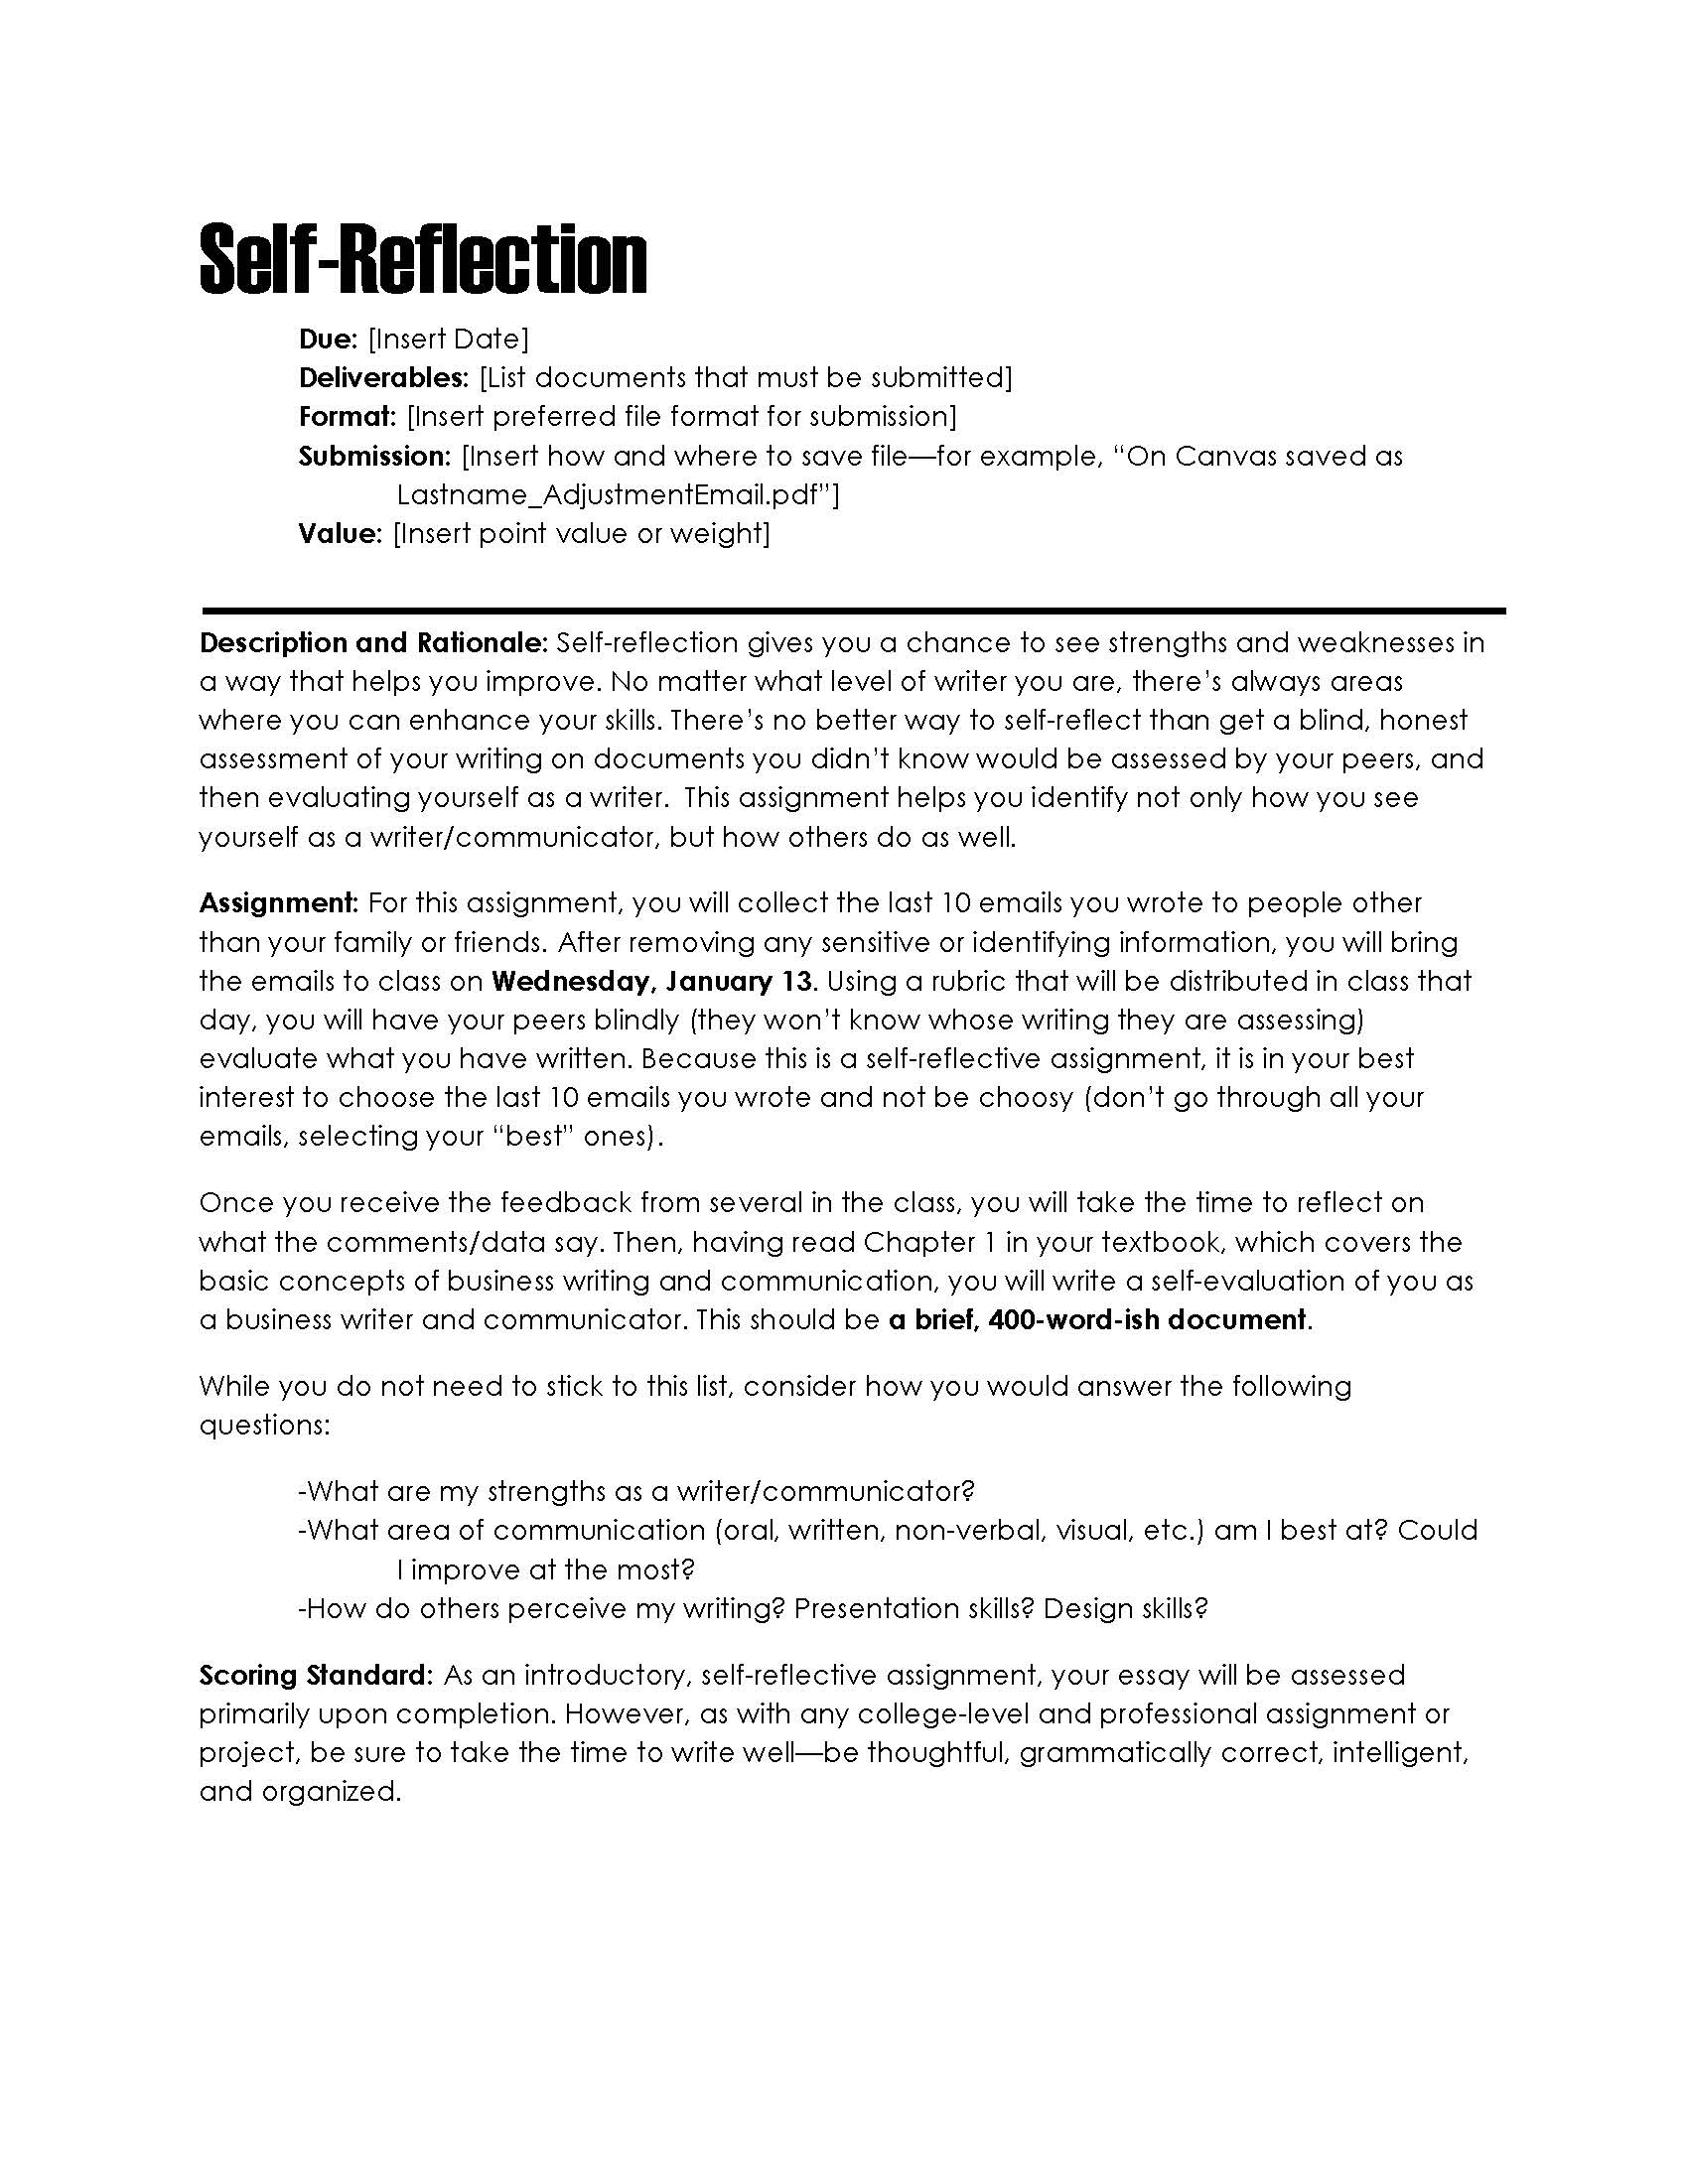 the self criticism and reflection education essay We will write a custom essay sample on critical reflection essay specifically for you for only $1638 $139/page  care for their patients and importantly for nurses to have the right education and learning strategies reflection  critical reflection essay  self- reflection essay.